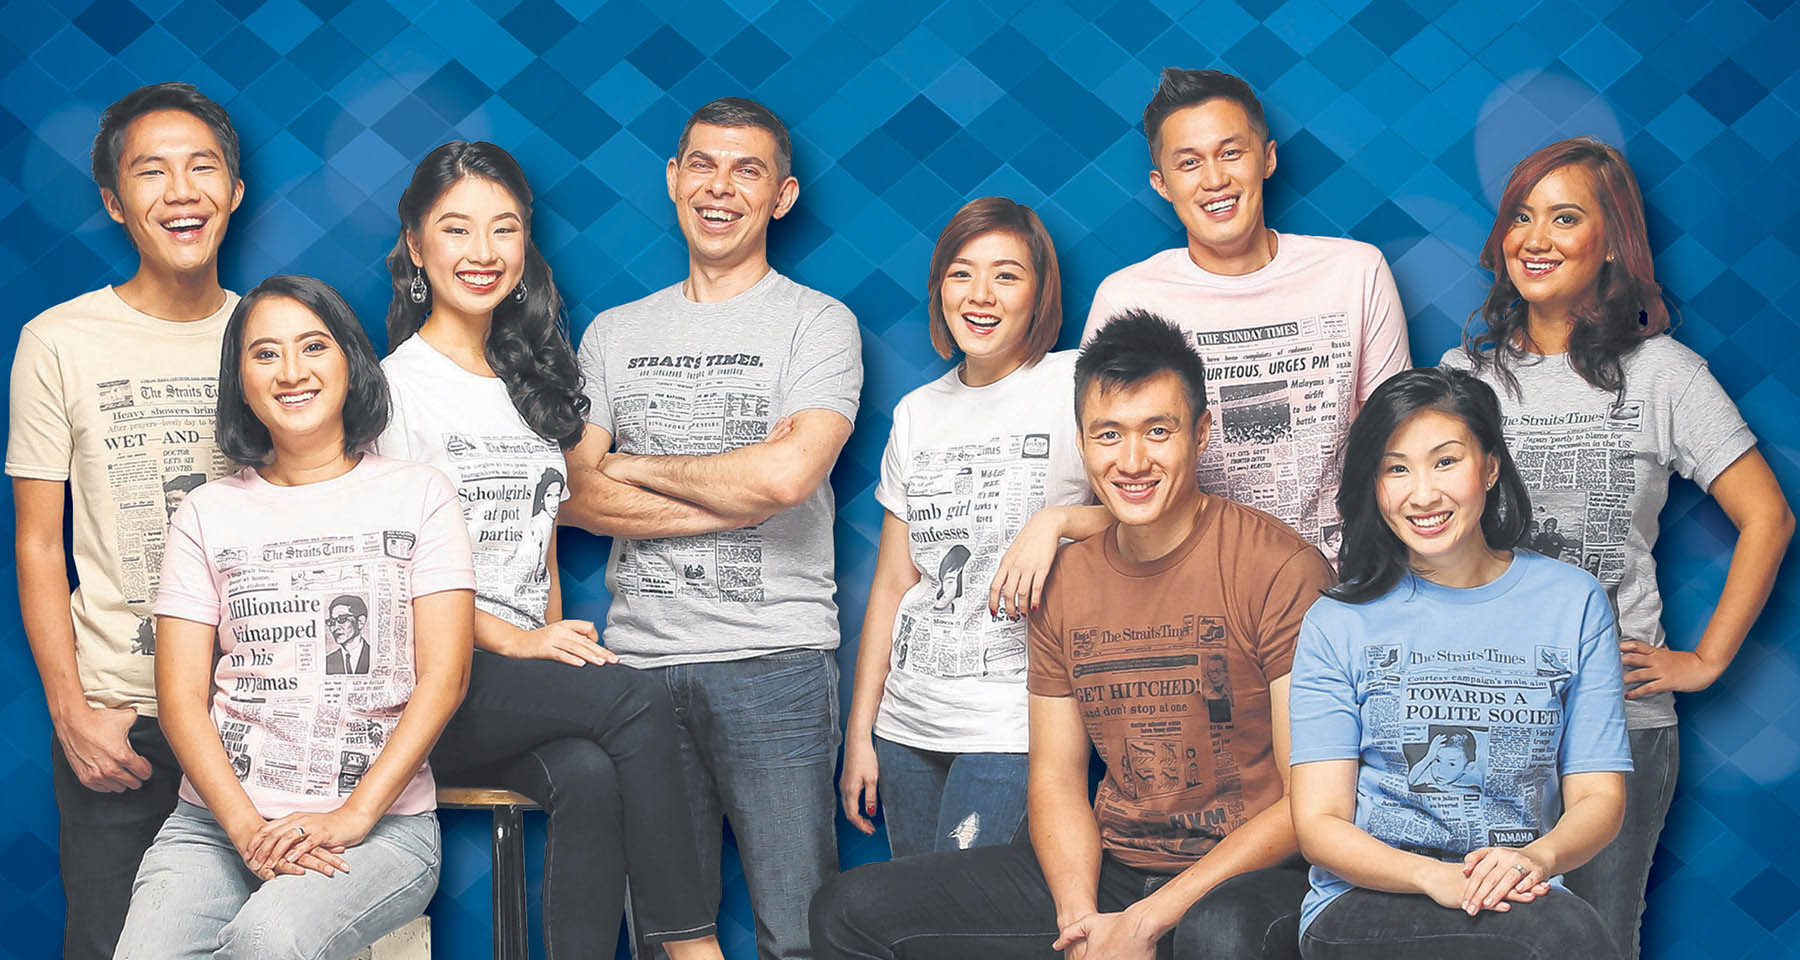 Straits Times celebrates anniversary in style with nostalgic T-shirt promotion